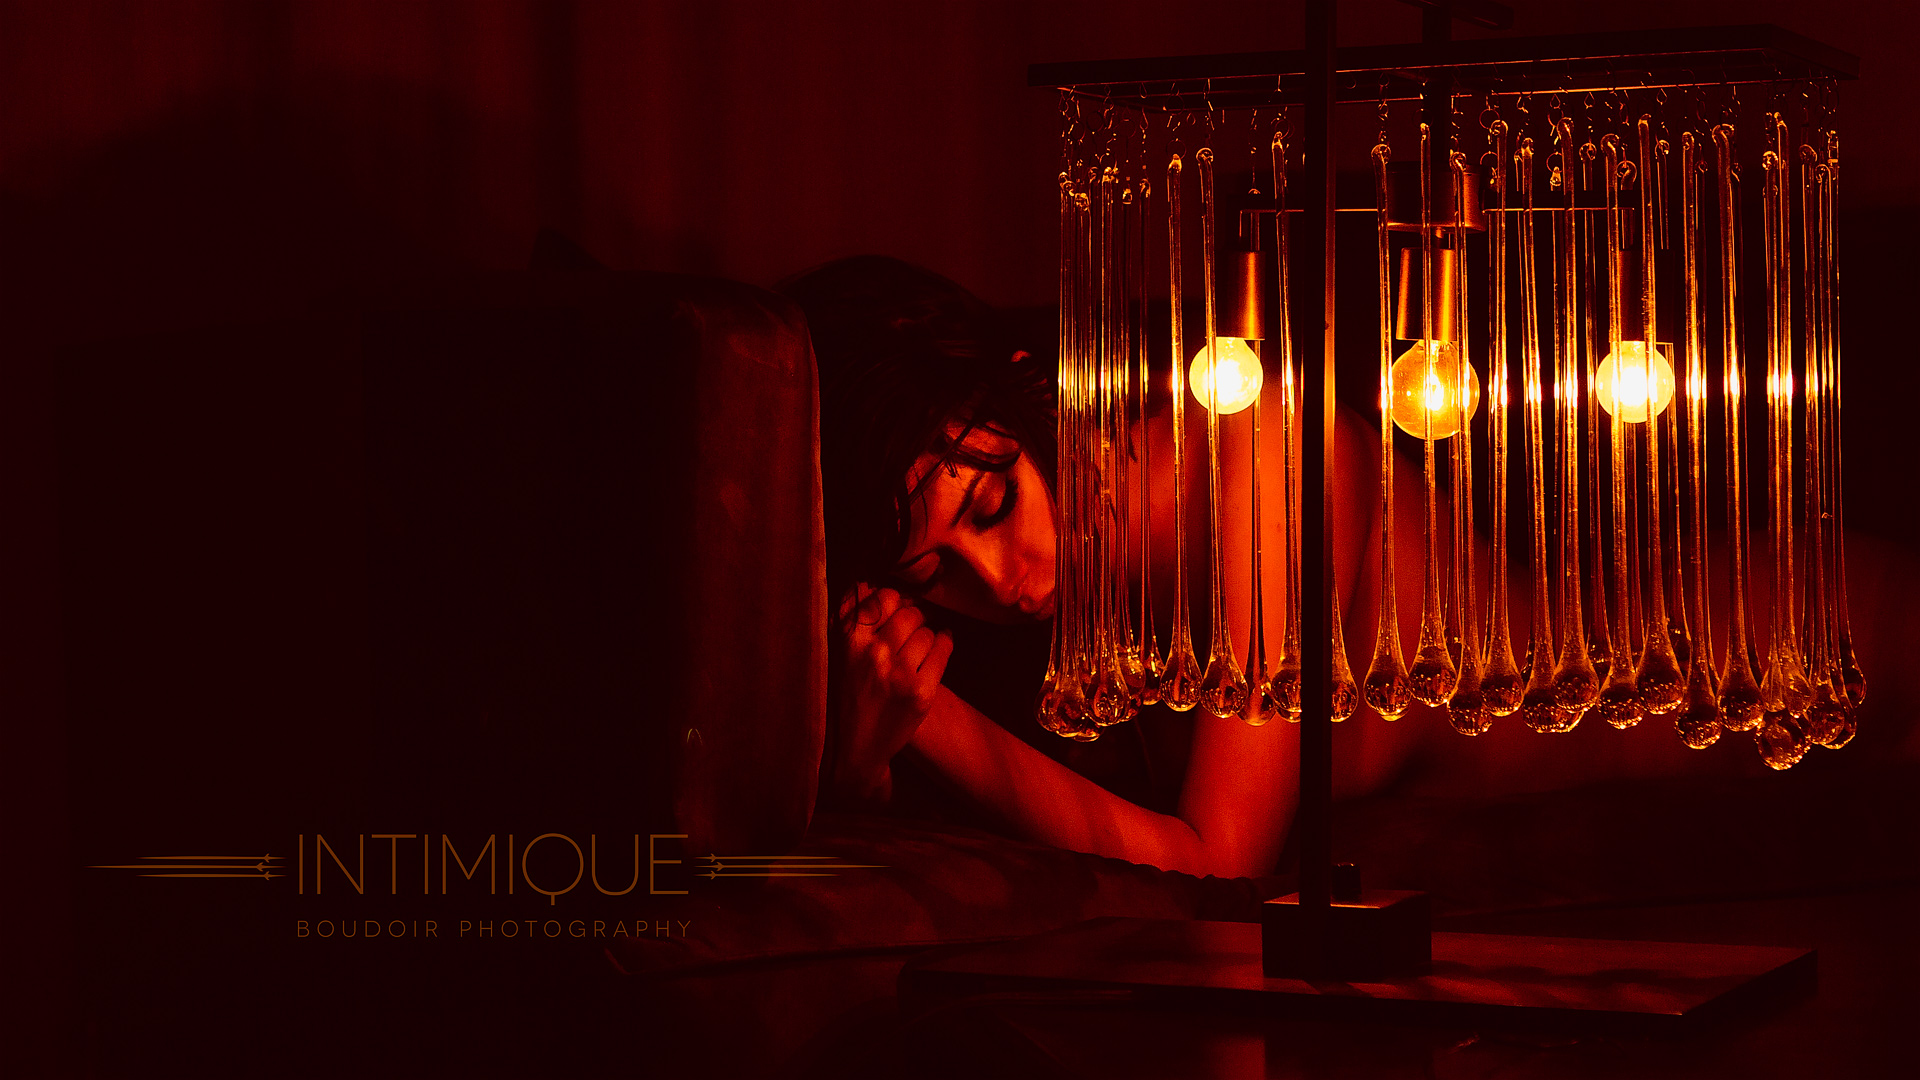 Intimique – Boudoir Photography